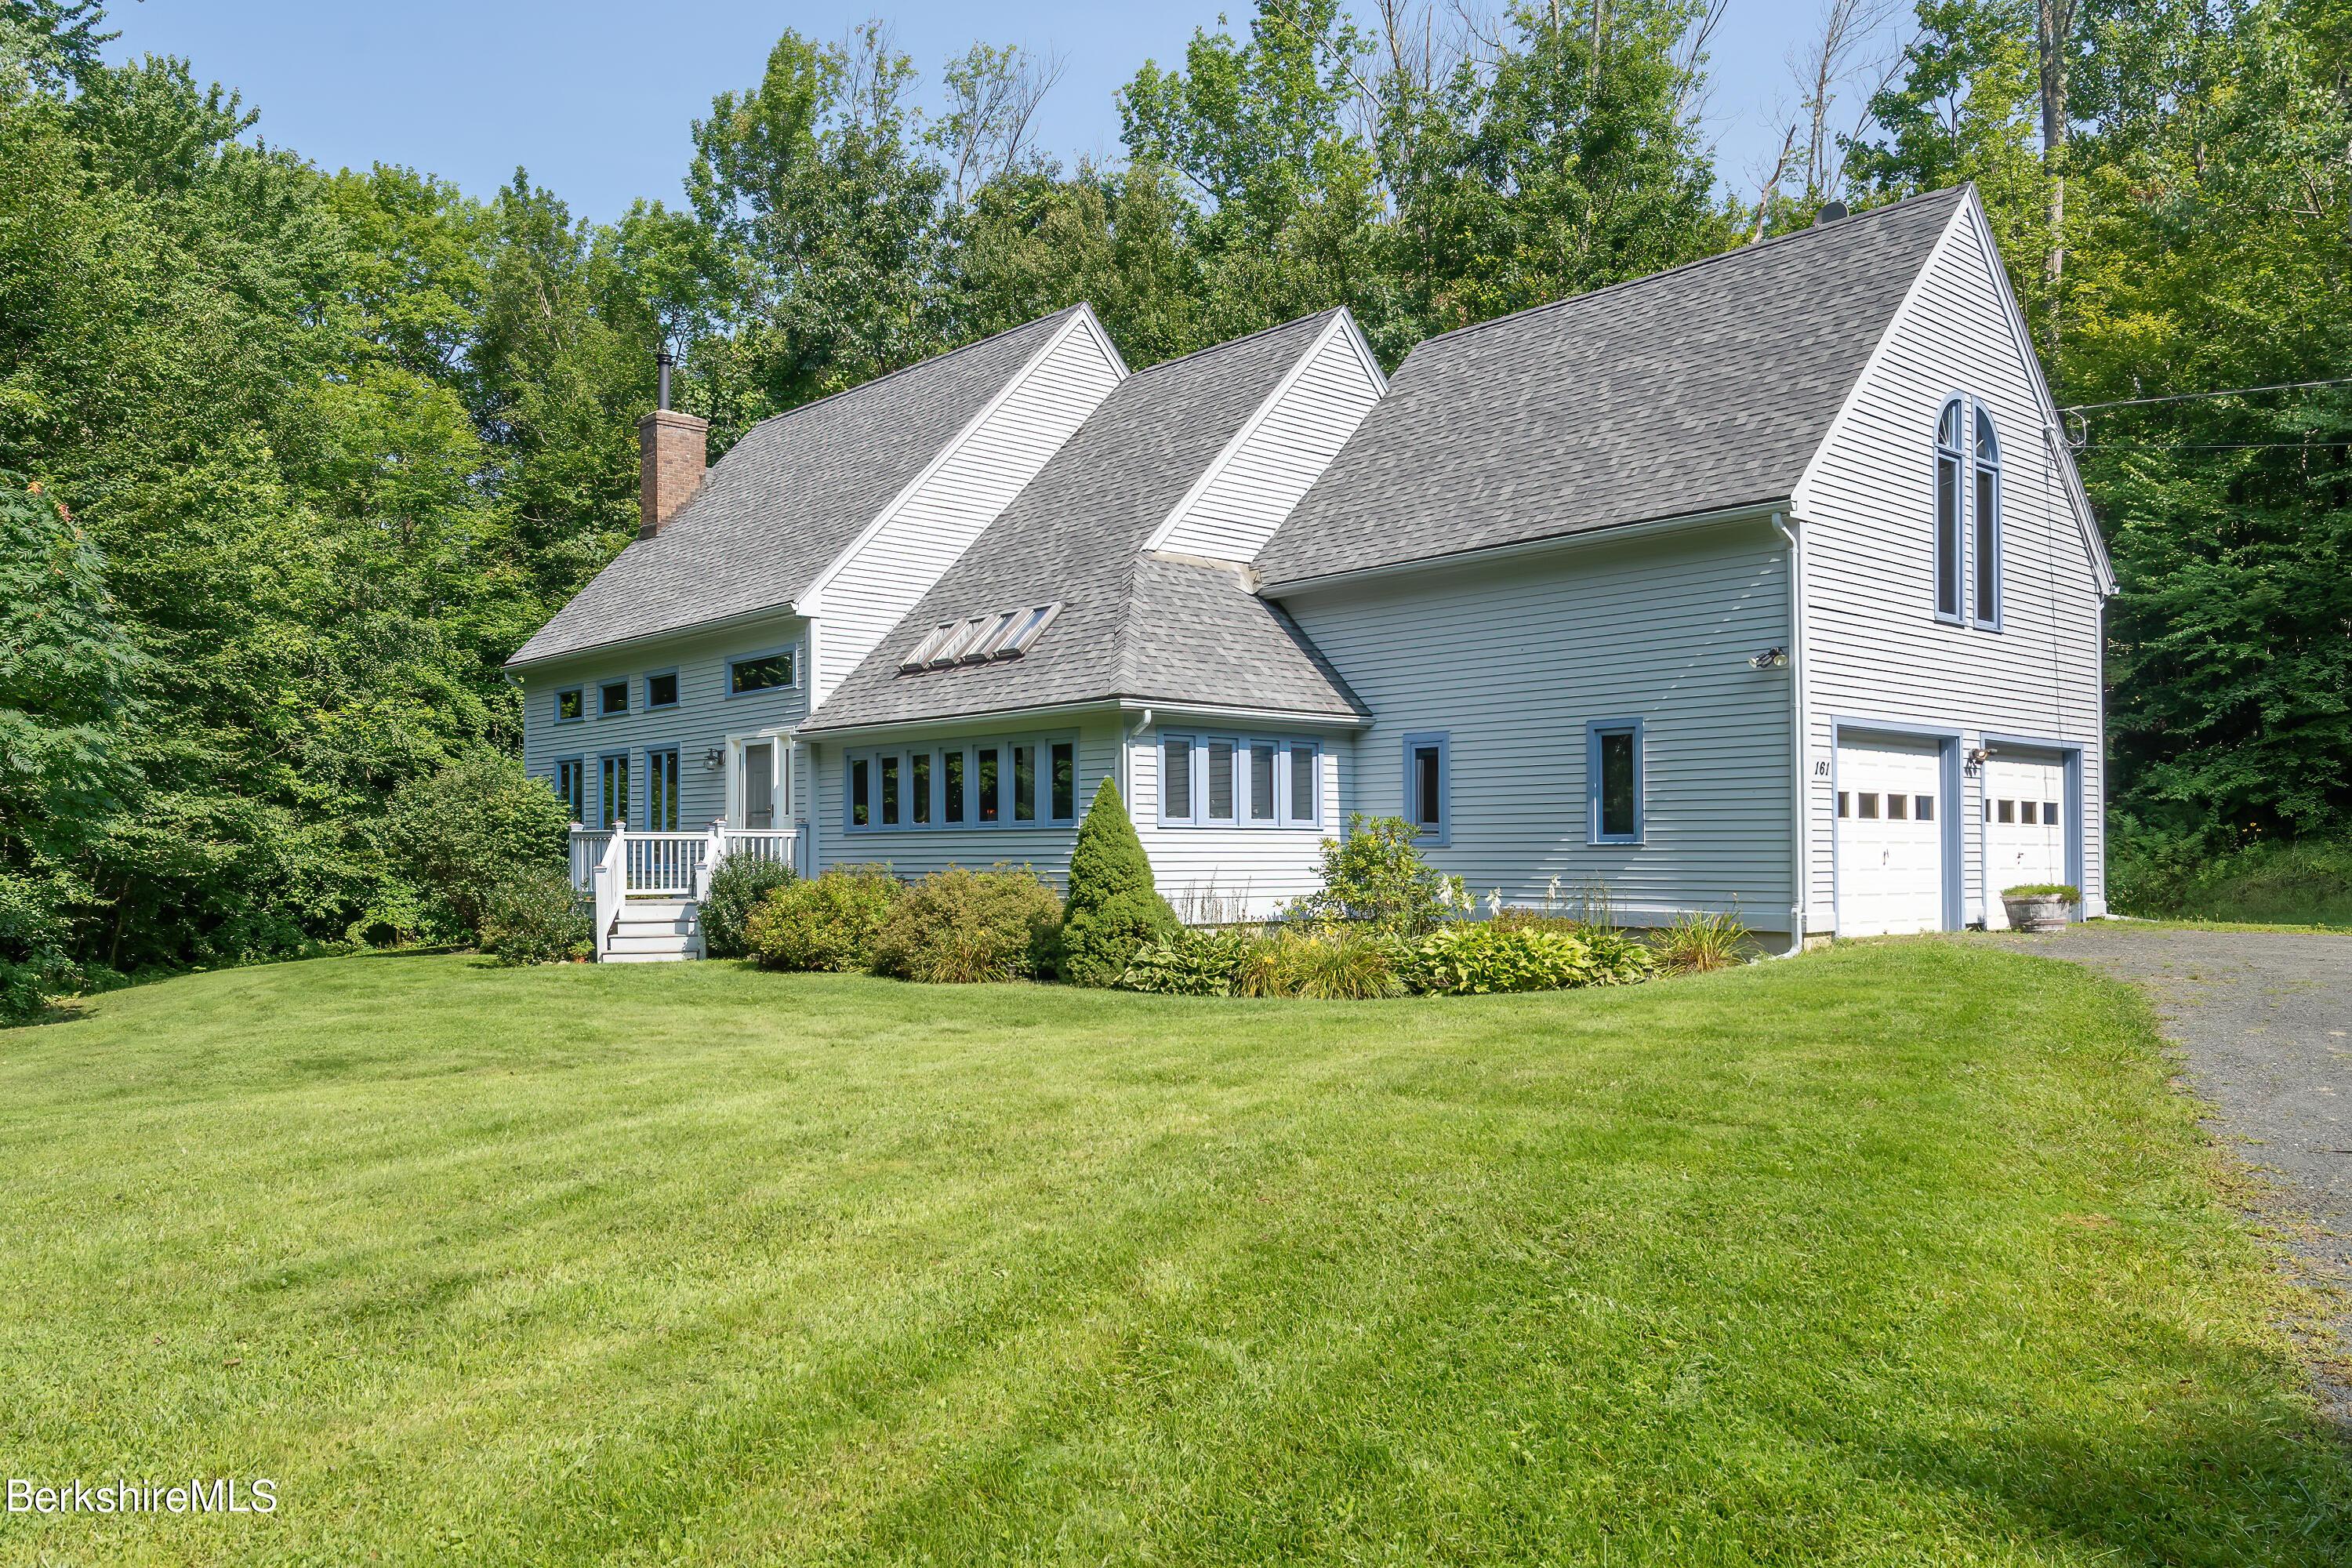 161 Capt Whitney Rd Becket MA 01223